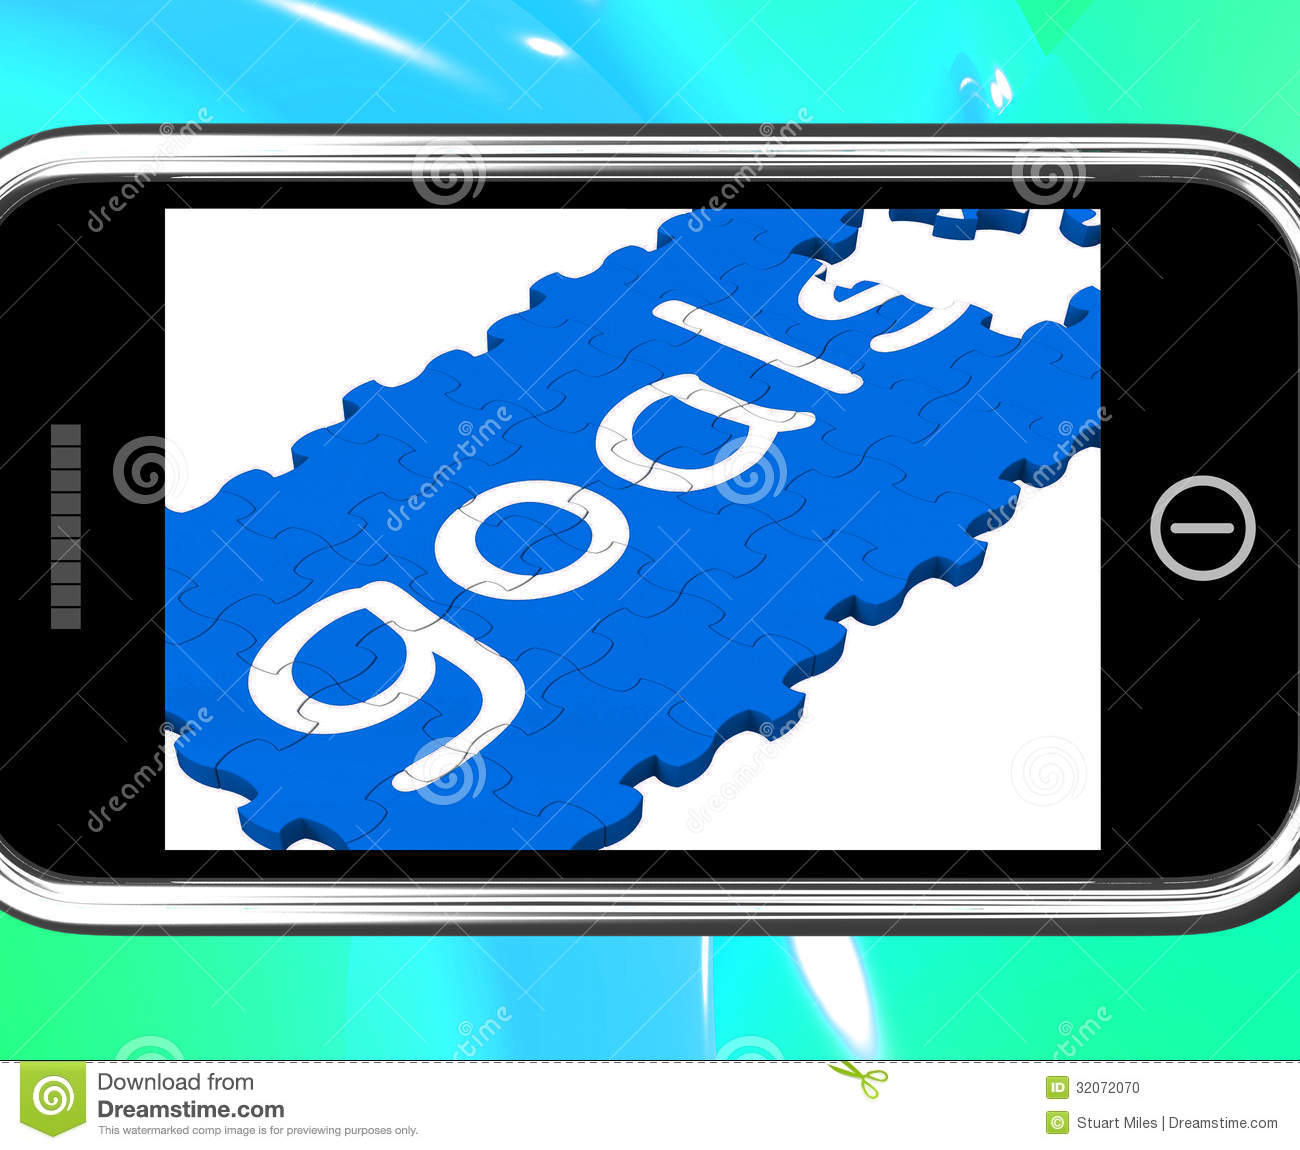 goals on smartphone showing future aspirations stock photo image goals on smartphone showing future aspirations